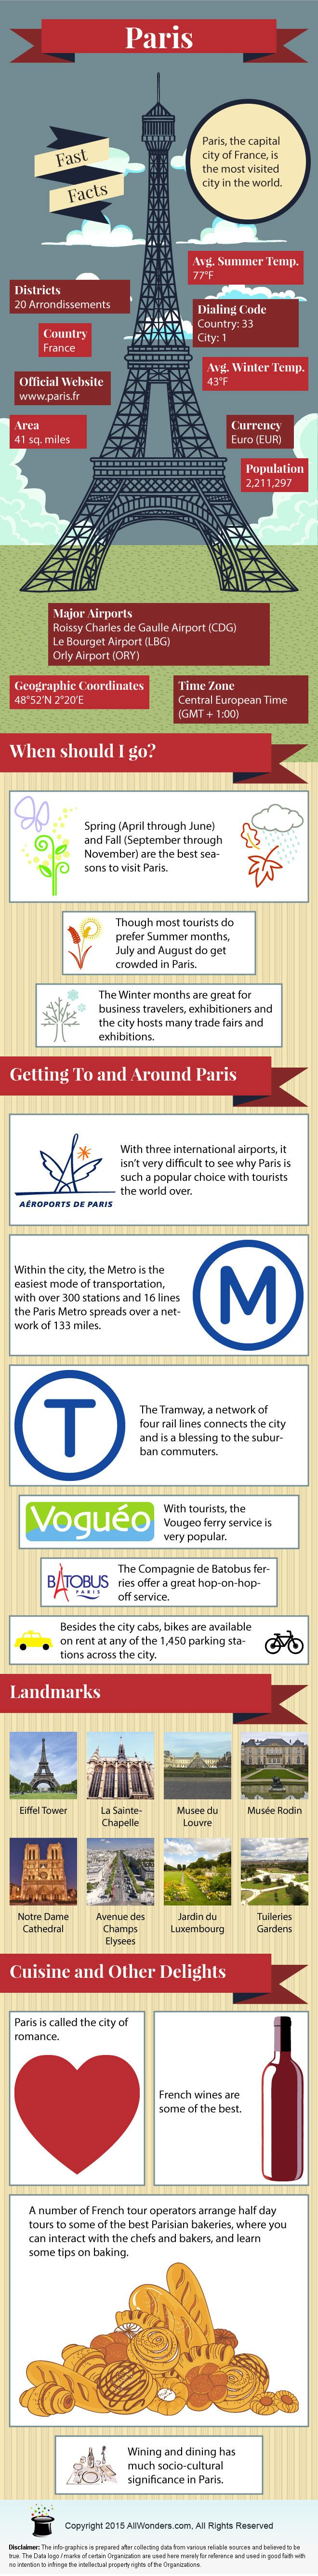 Paris Travel Infographic                                                       …